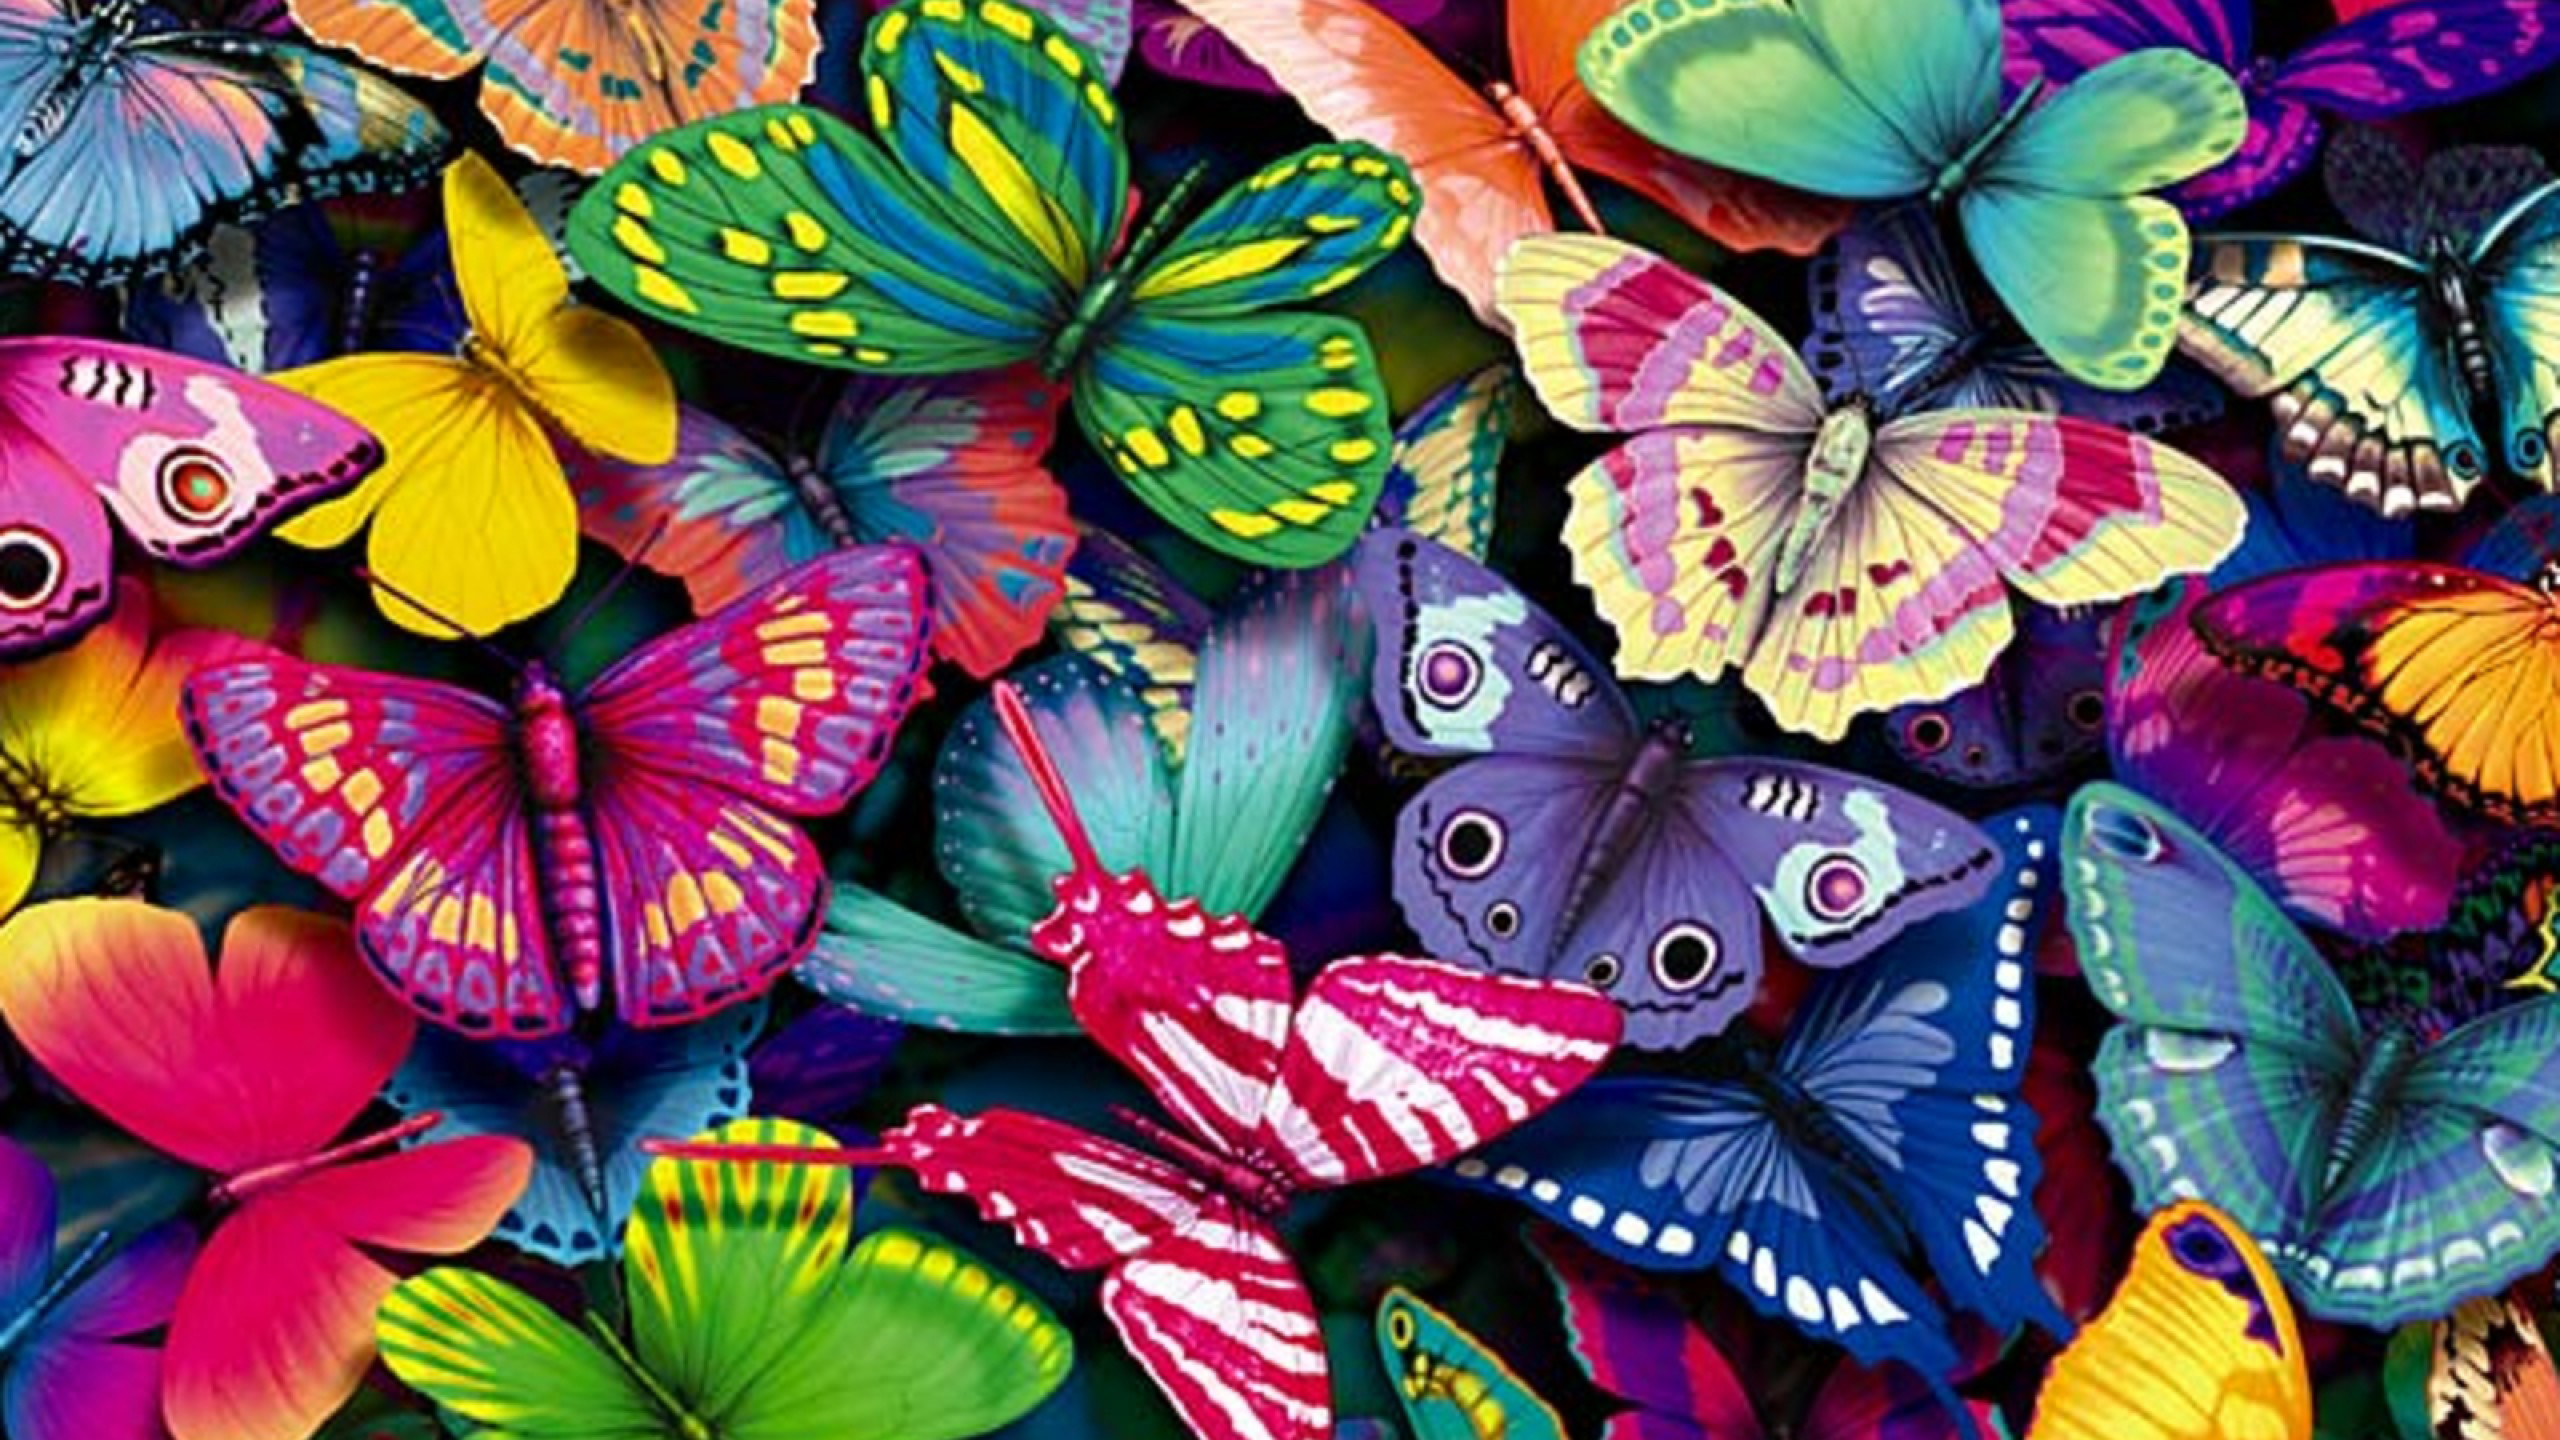 Cool Wallpapers HD with Colorful Butterfly in Cartoon HD Wallpapers 2560x1440